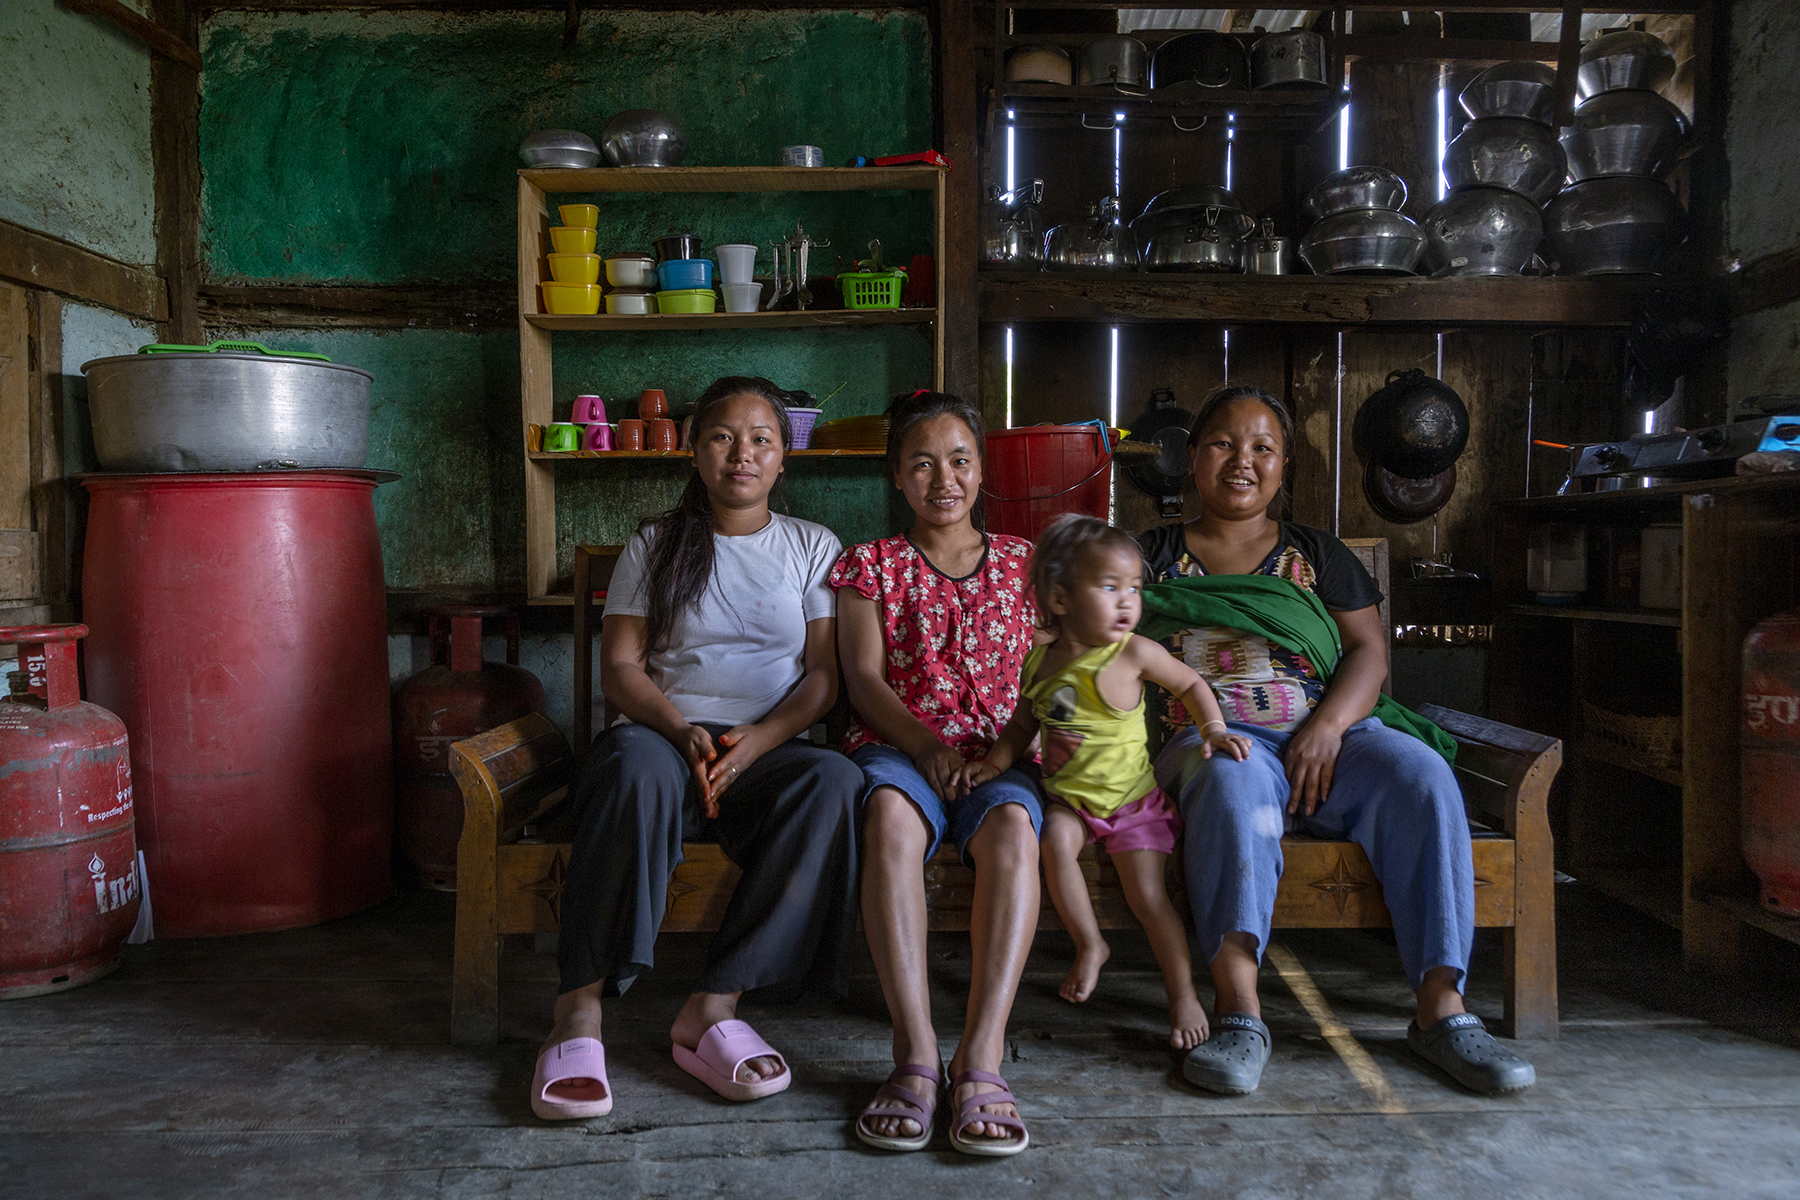 Ngaihnem sits with her sisters and nephew on a wooden divan. From left to right: Niang Liankim (28) in white T-shirt and black pants, Ngaihnem in blue shorts and red top with small white flowers, and Chingnunmoi (25) with light blue pants and a folded green shawl draped crosswise on her black T-shirt. Chingnunmoi's son Moisuankim (1.3 years) sits between her and Ngaihnem wearing a yellow banian and pink shorts. To the left are a gas cylinder and a huge red drum. Behind them are wooden shelves filled with steel vessels, porcelain cups and plastic containers.